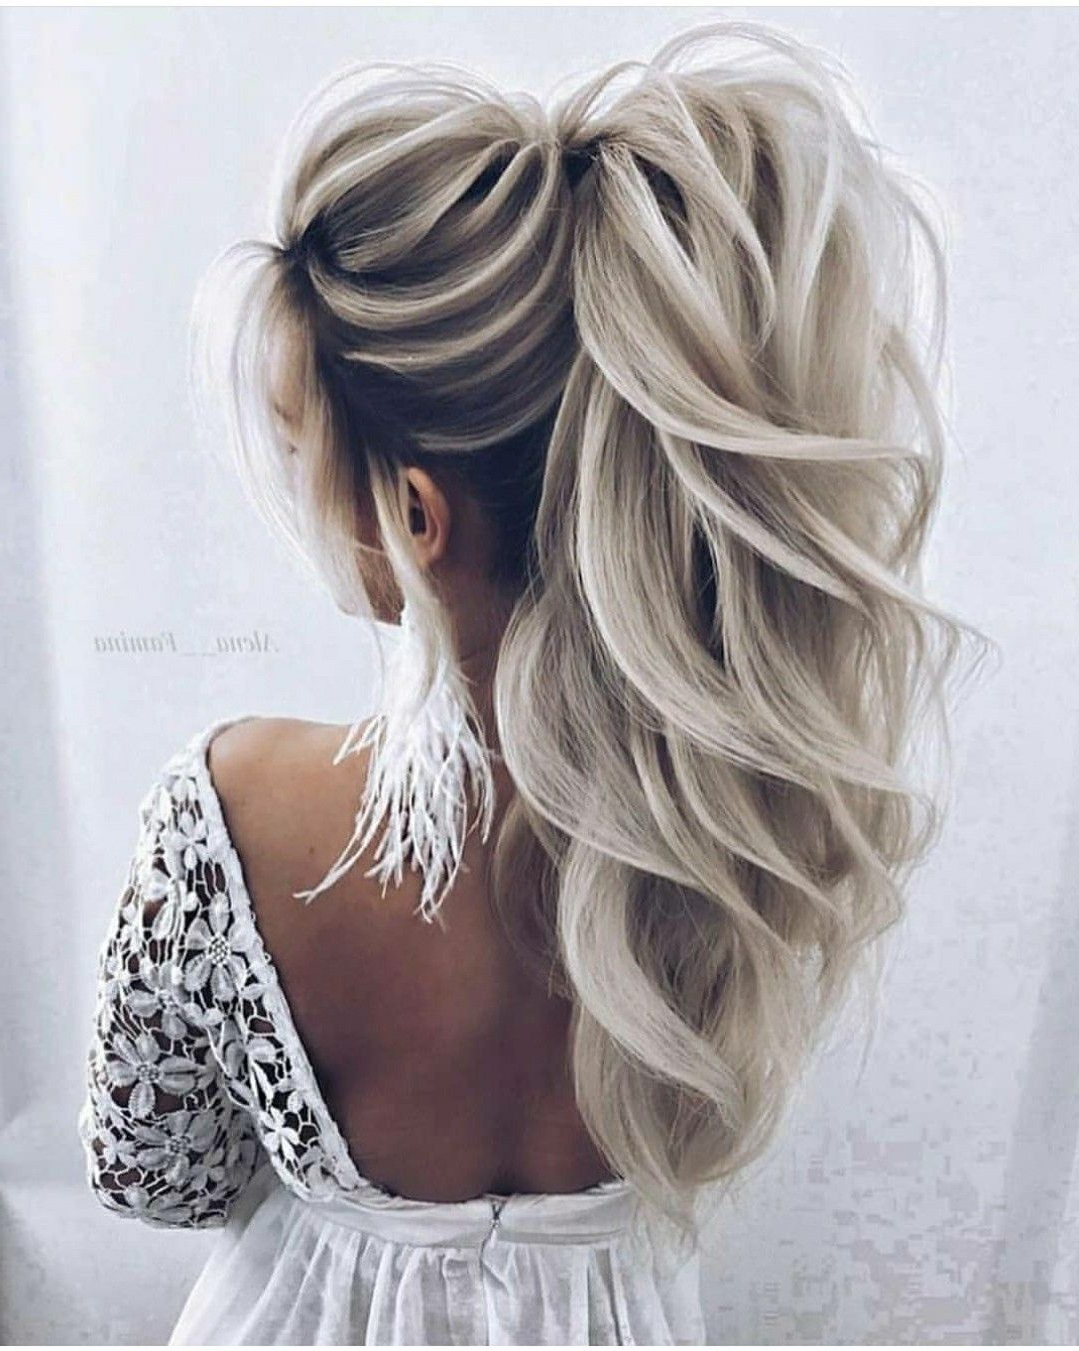 Hair Styles, Hair, Hair Pertaining To Well Known Messy Voluminous Ponytail Hairstyles With Textured Bangs (View 7 of 20)